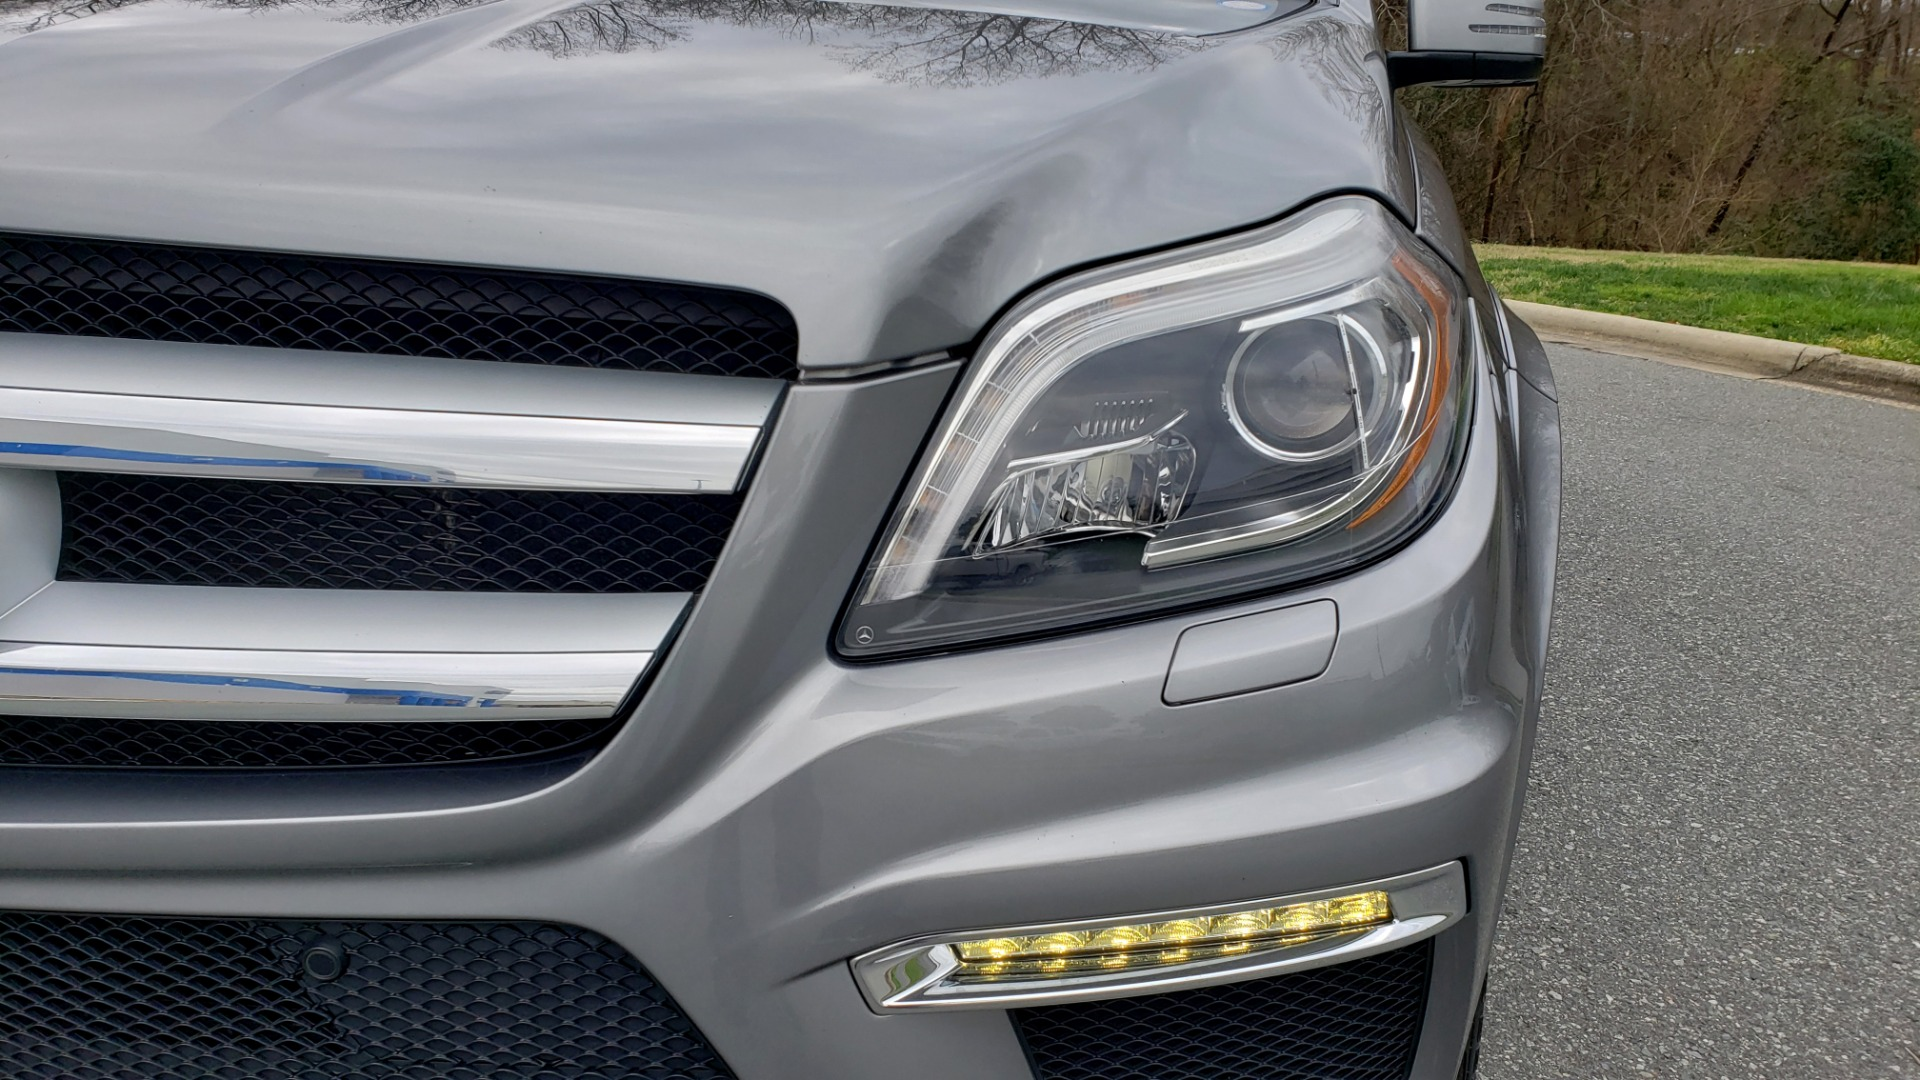 Used 2016 Mercedes-Benz GL 550 4MATIC / NAV / DRVR ASST / DUAL-ROOF / REARVIEW for sale Sold at Formula Imports in Charlotte NC 28227 25